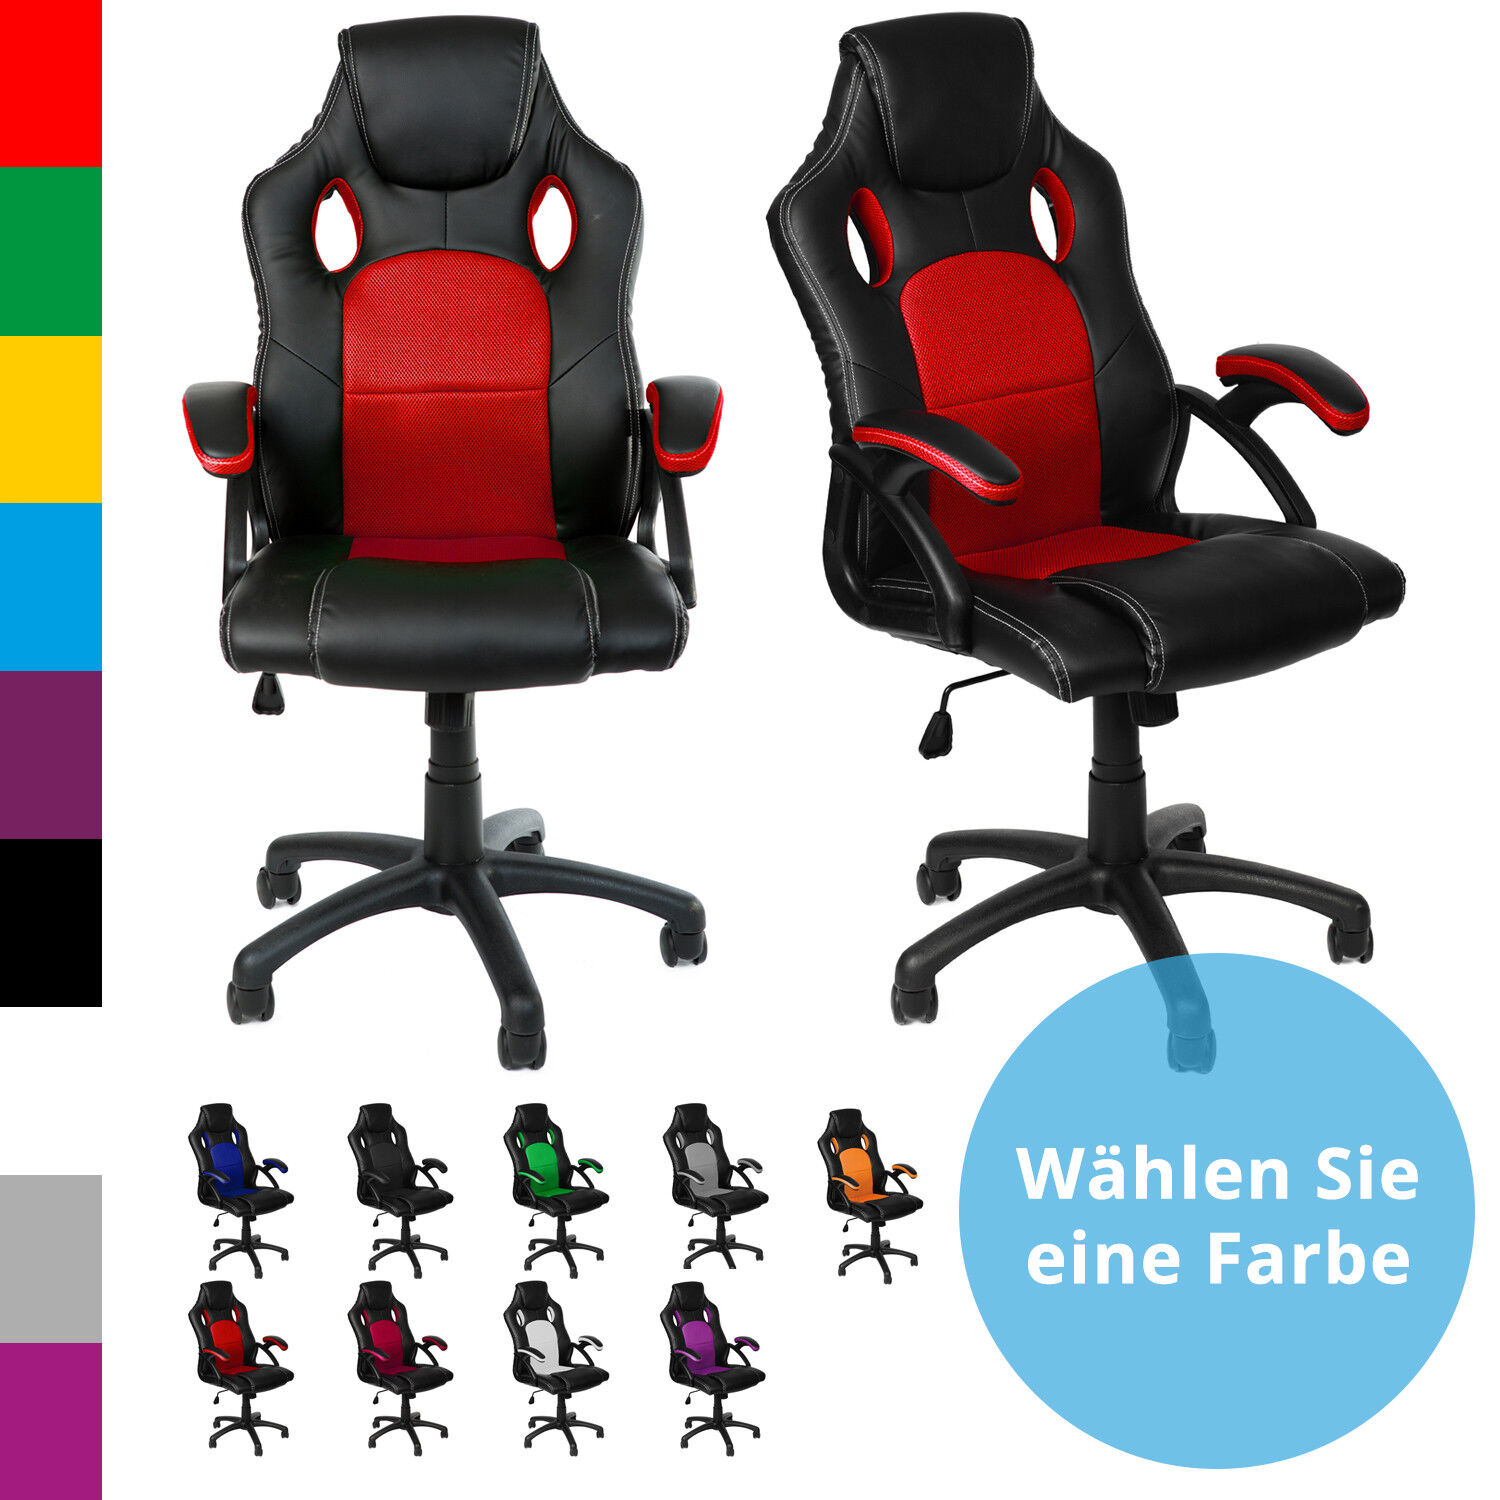 Sixbros Burostuhl Kinder Test Buerostuehle Im Test Qpw Decoration